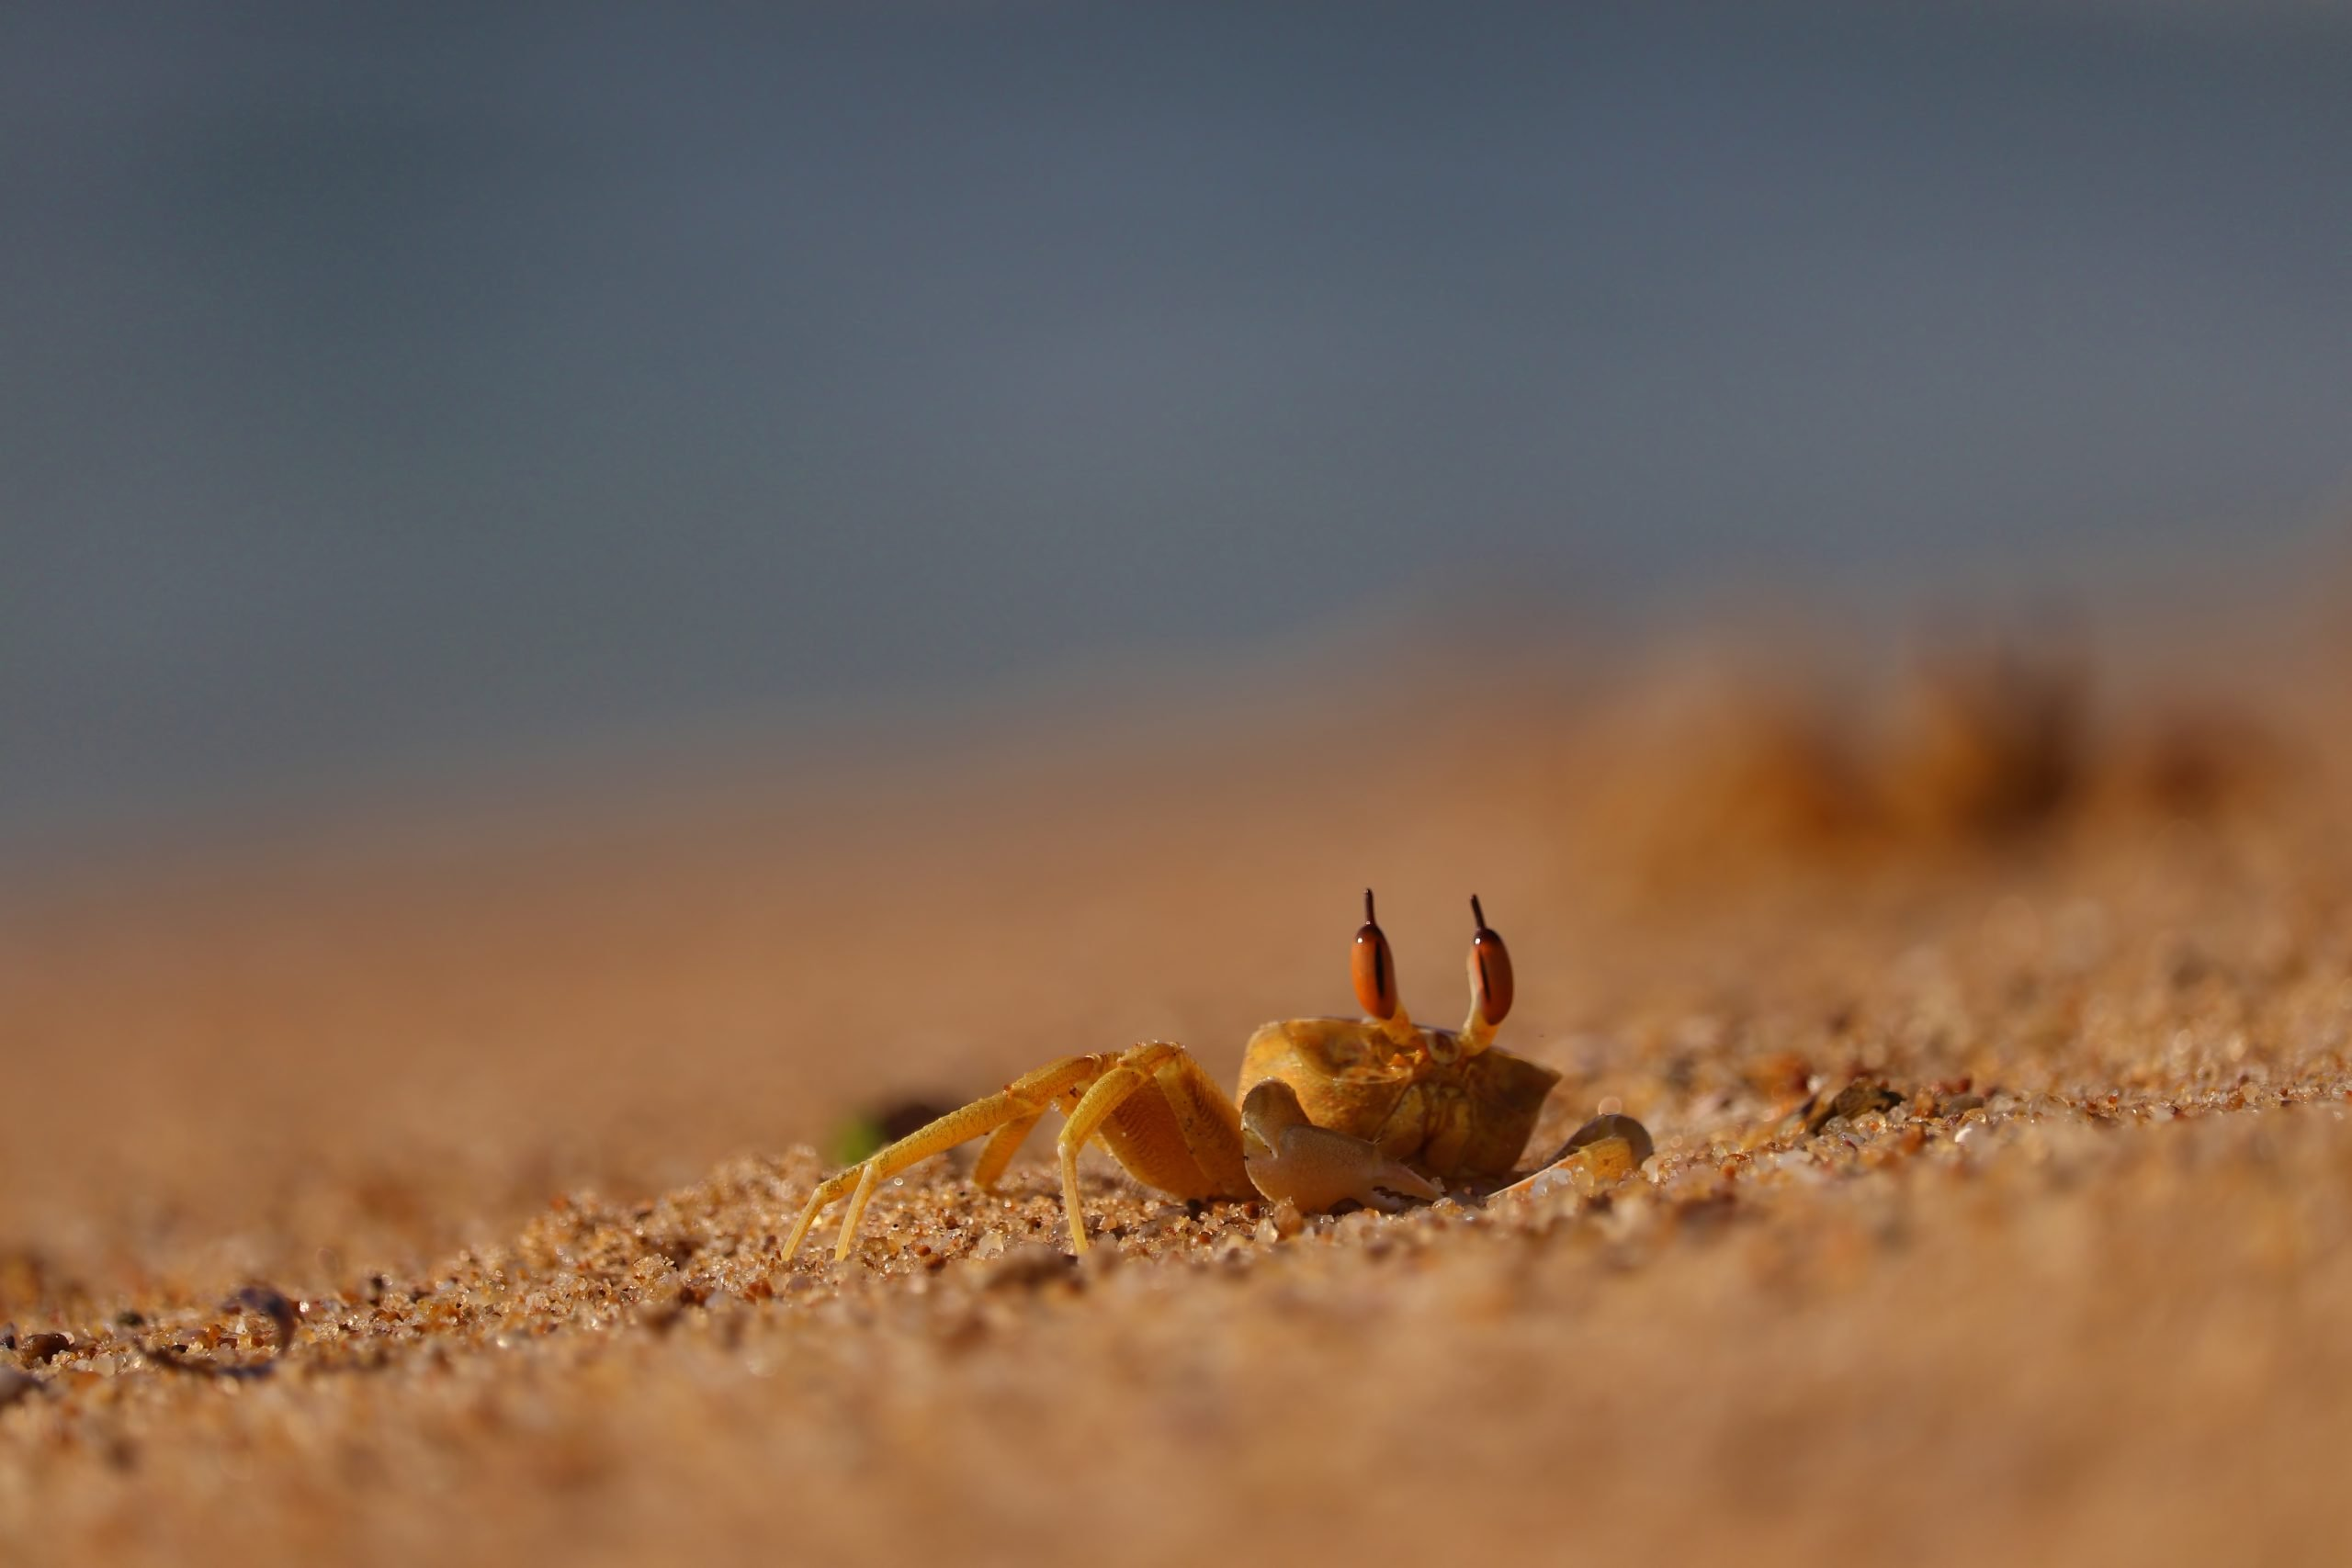 Crab crawling on the sand